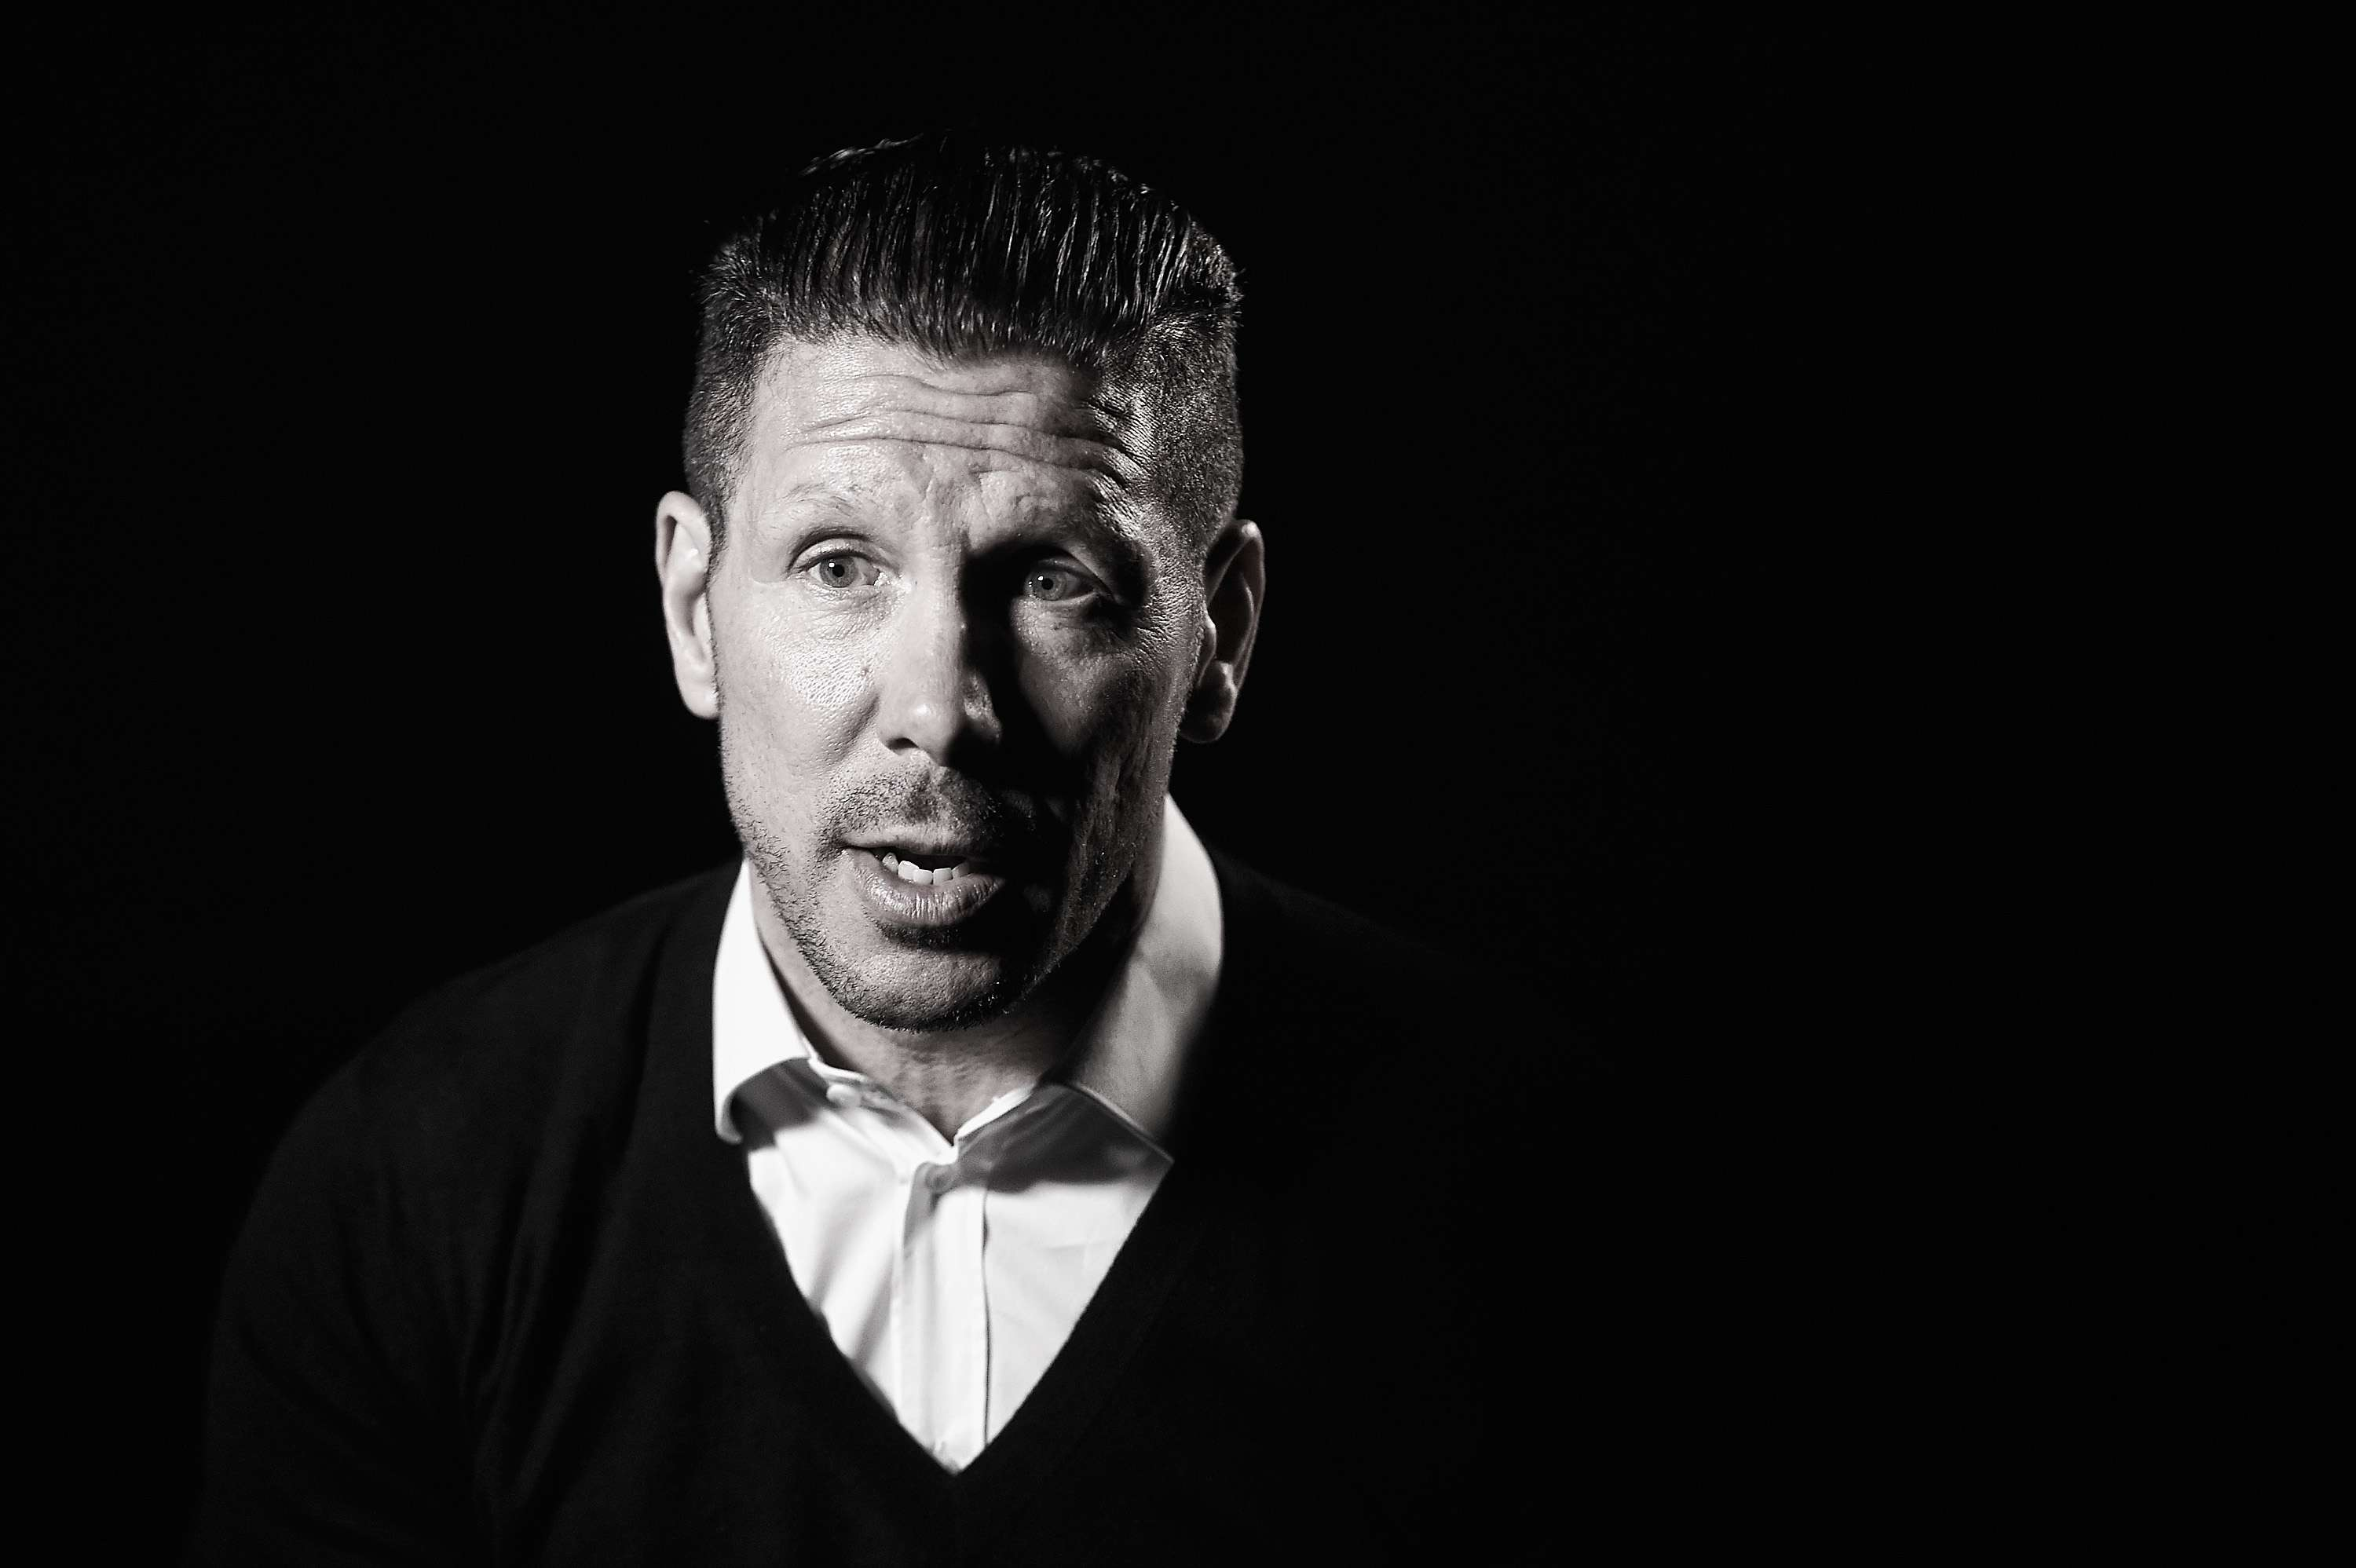 Simeone, técnico del Atlético de Madrid. Foto: Getty Images